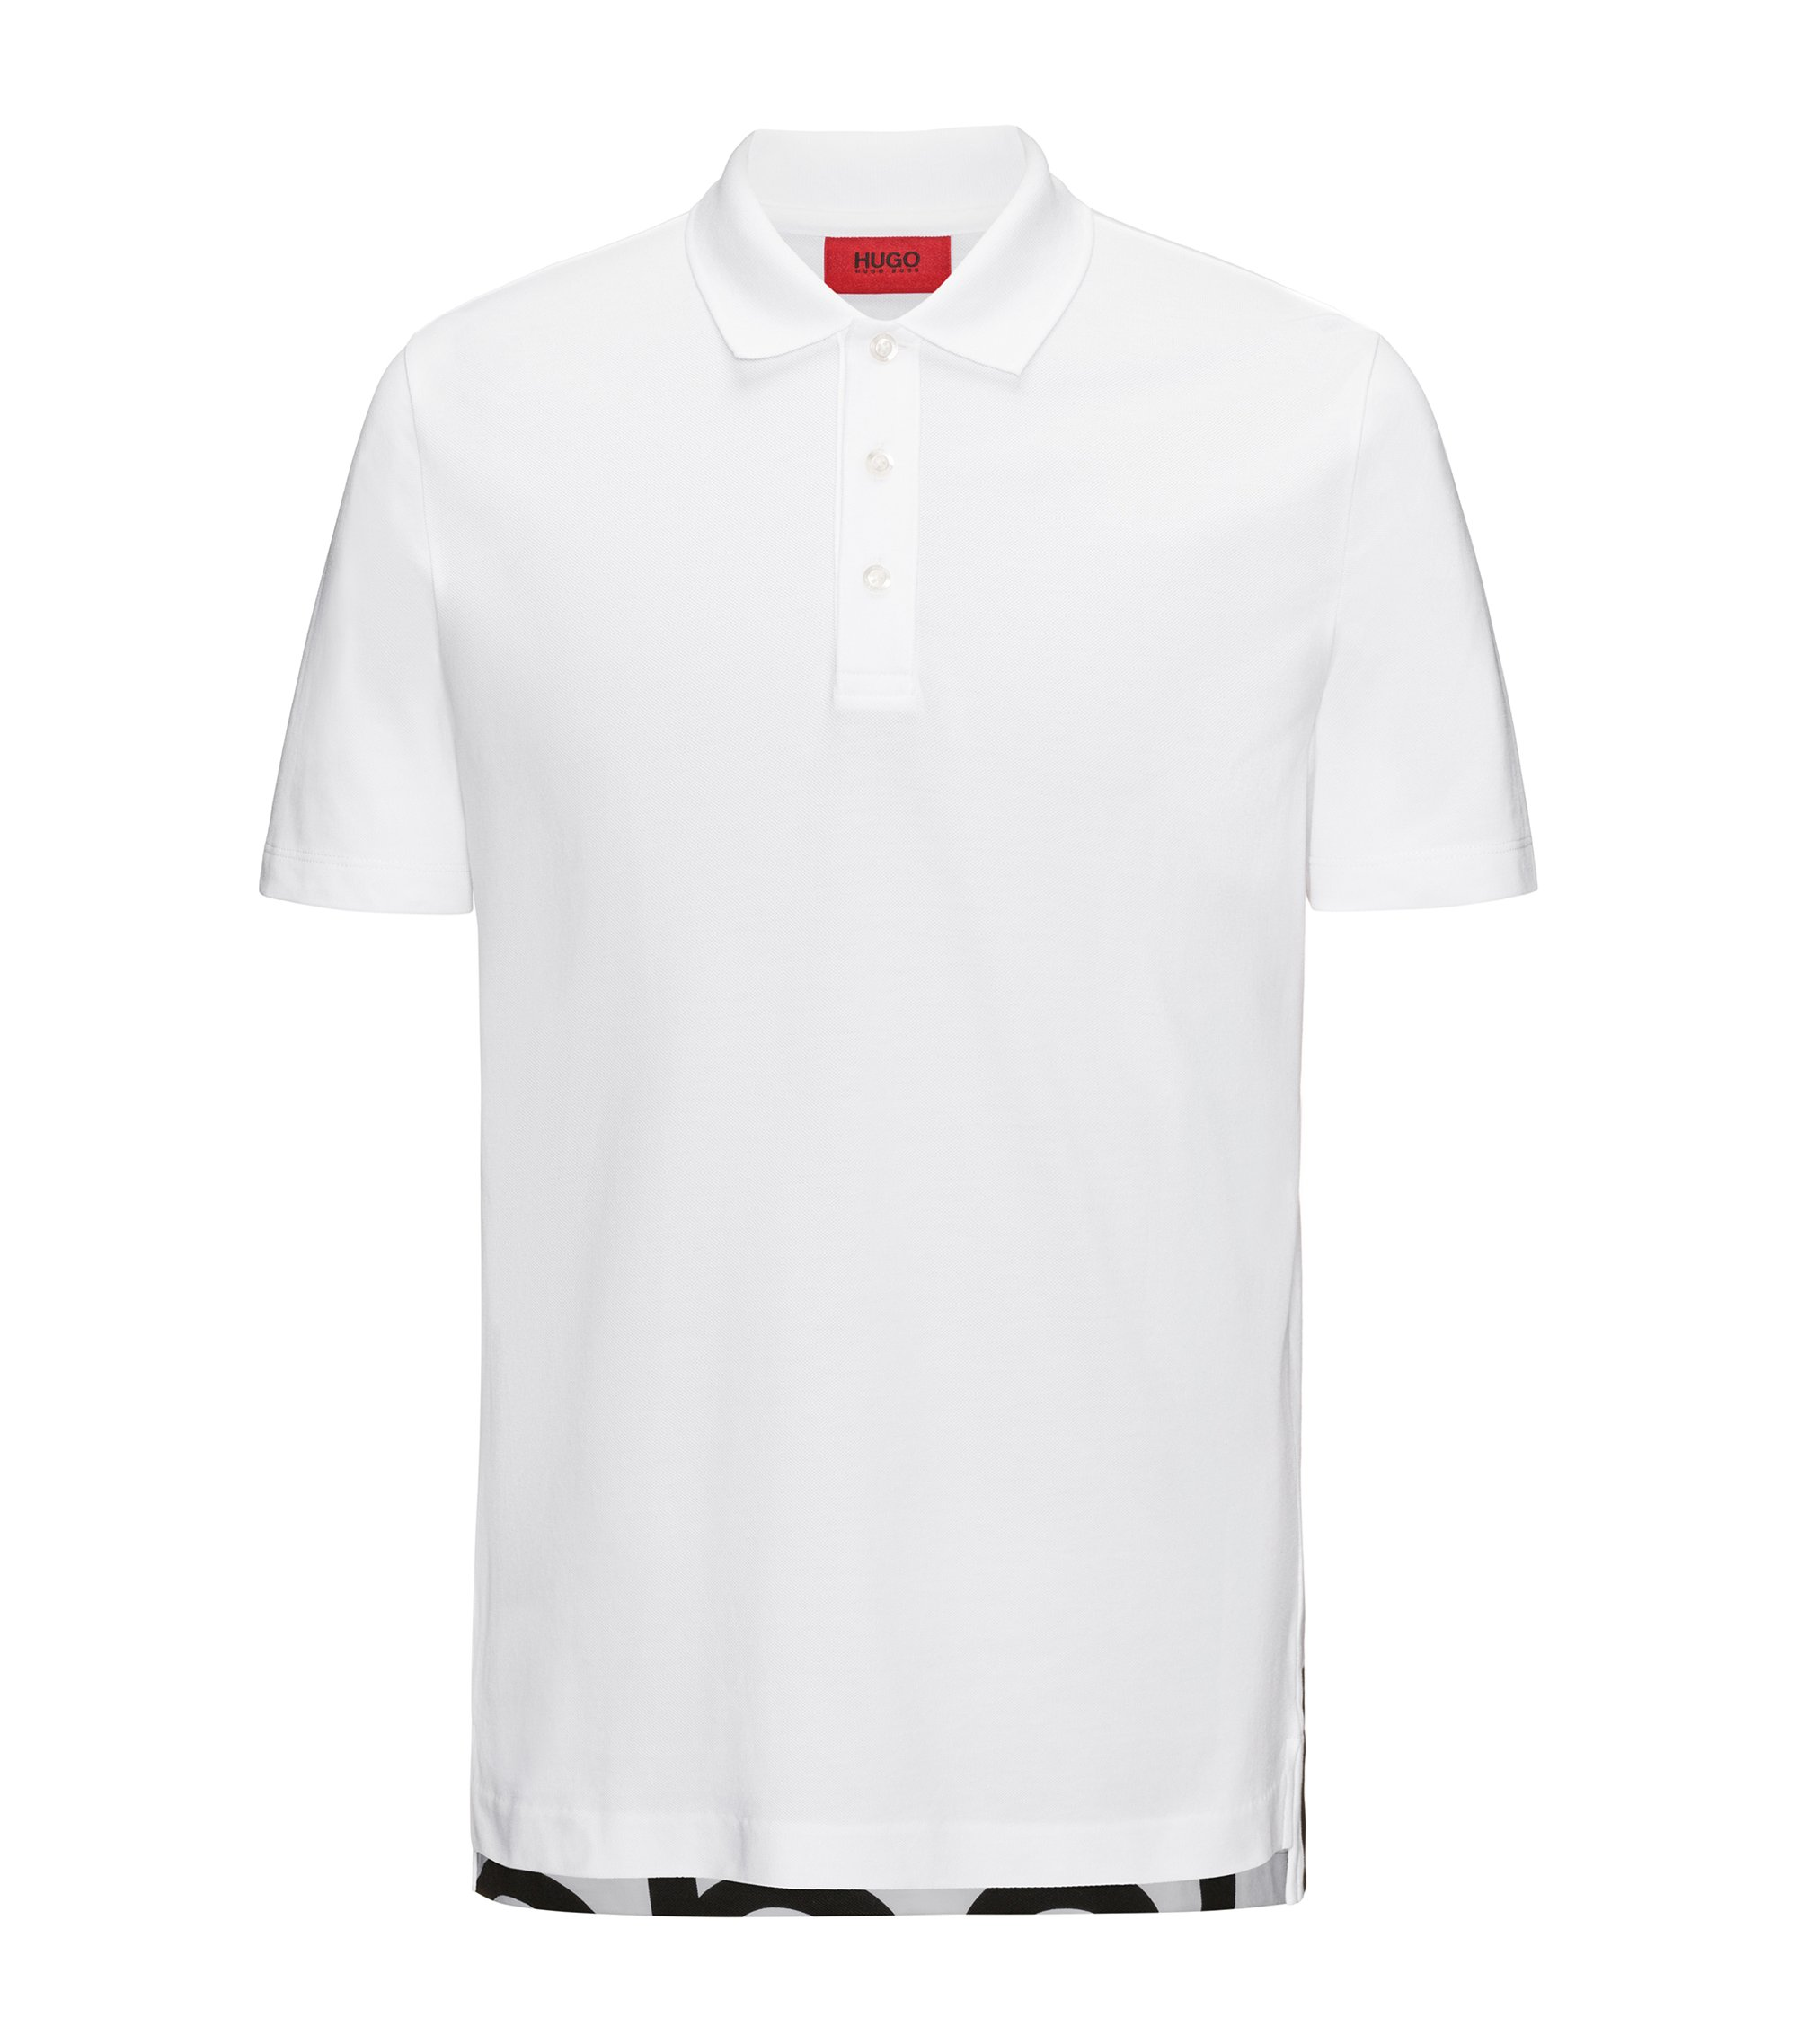 Graphic-Print Polo Shirt, Regular Fit | Darelli, White